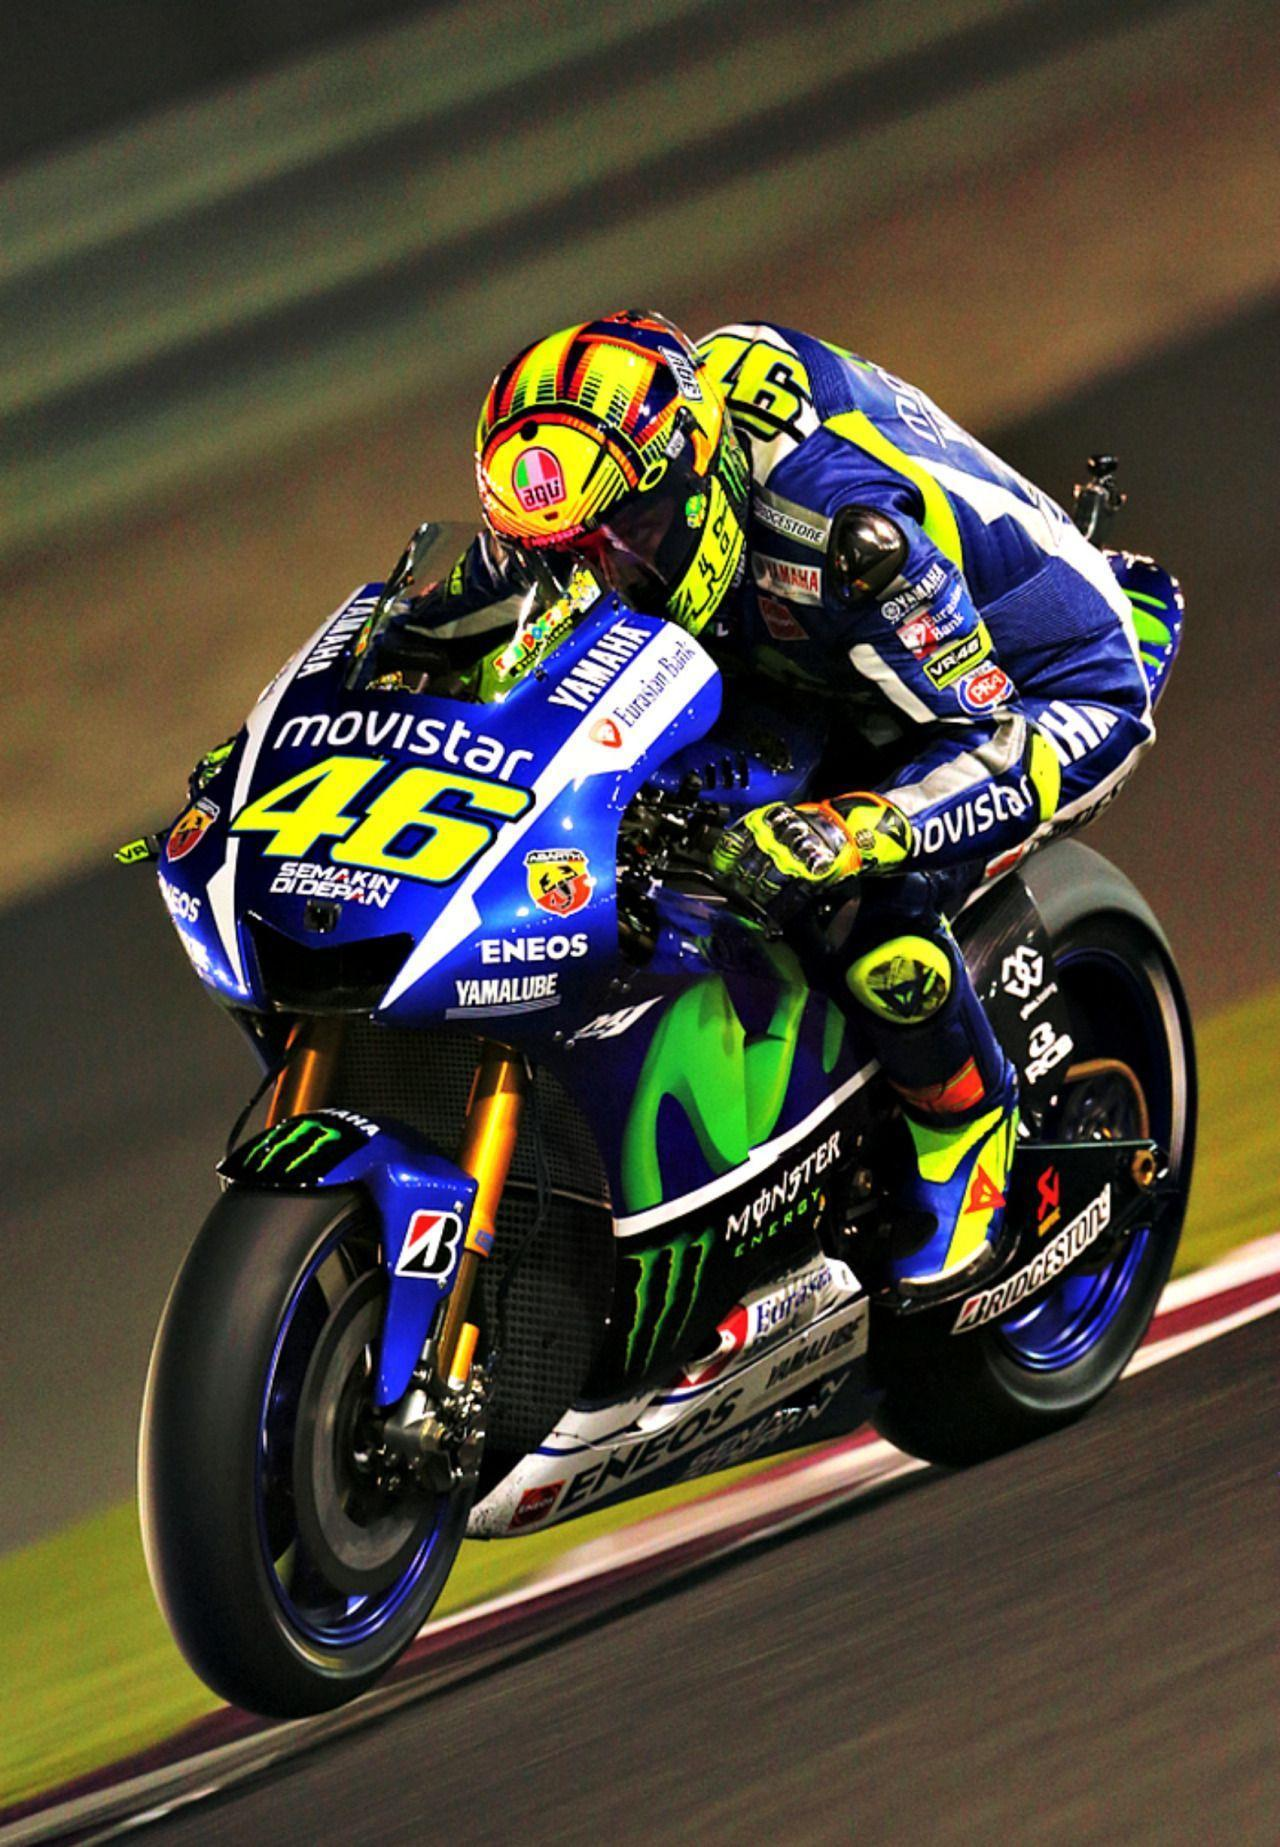 1000+ images about Valentino Rossi VR46 on Pinterest | Cars, Warm ...